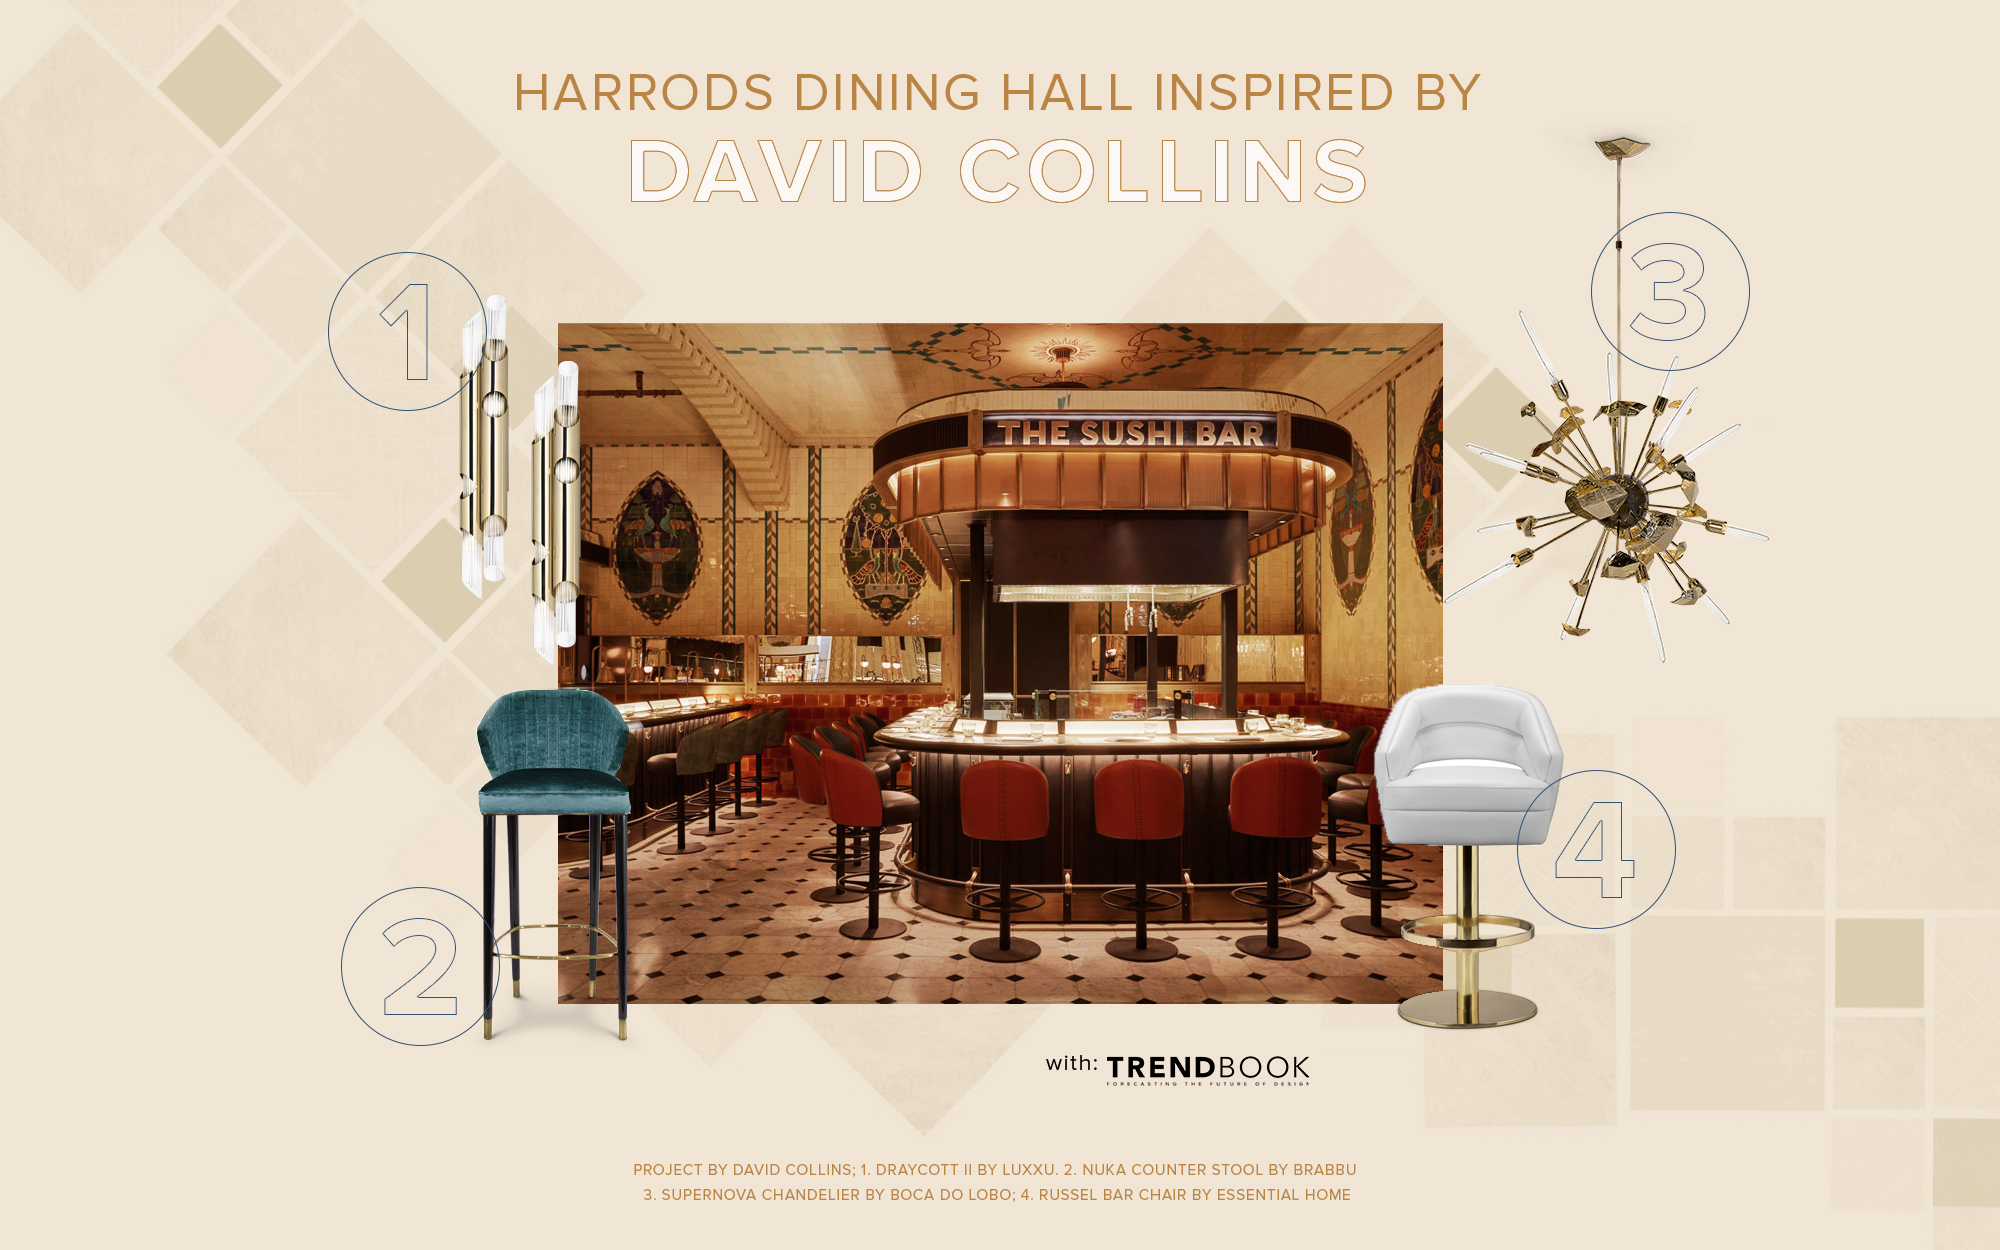 Harrod's Dining Hall: Inspiration from David Collins